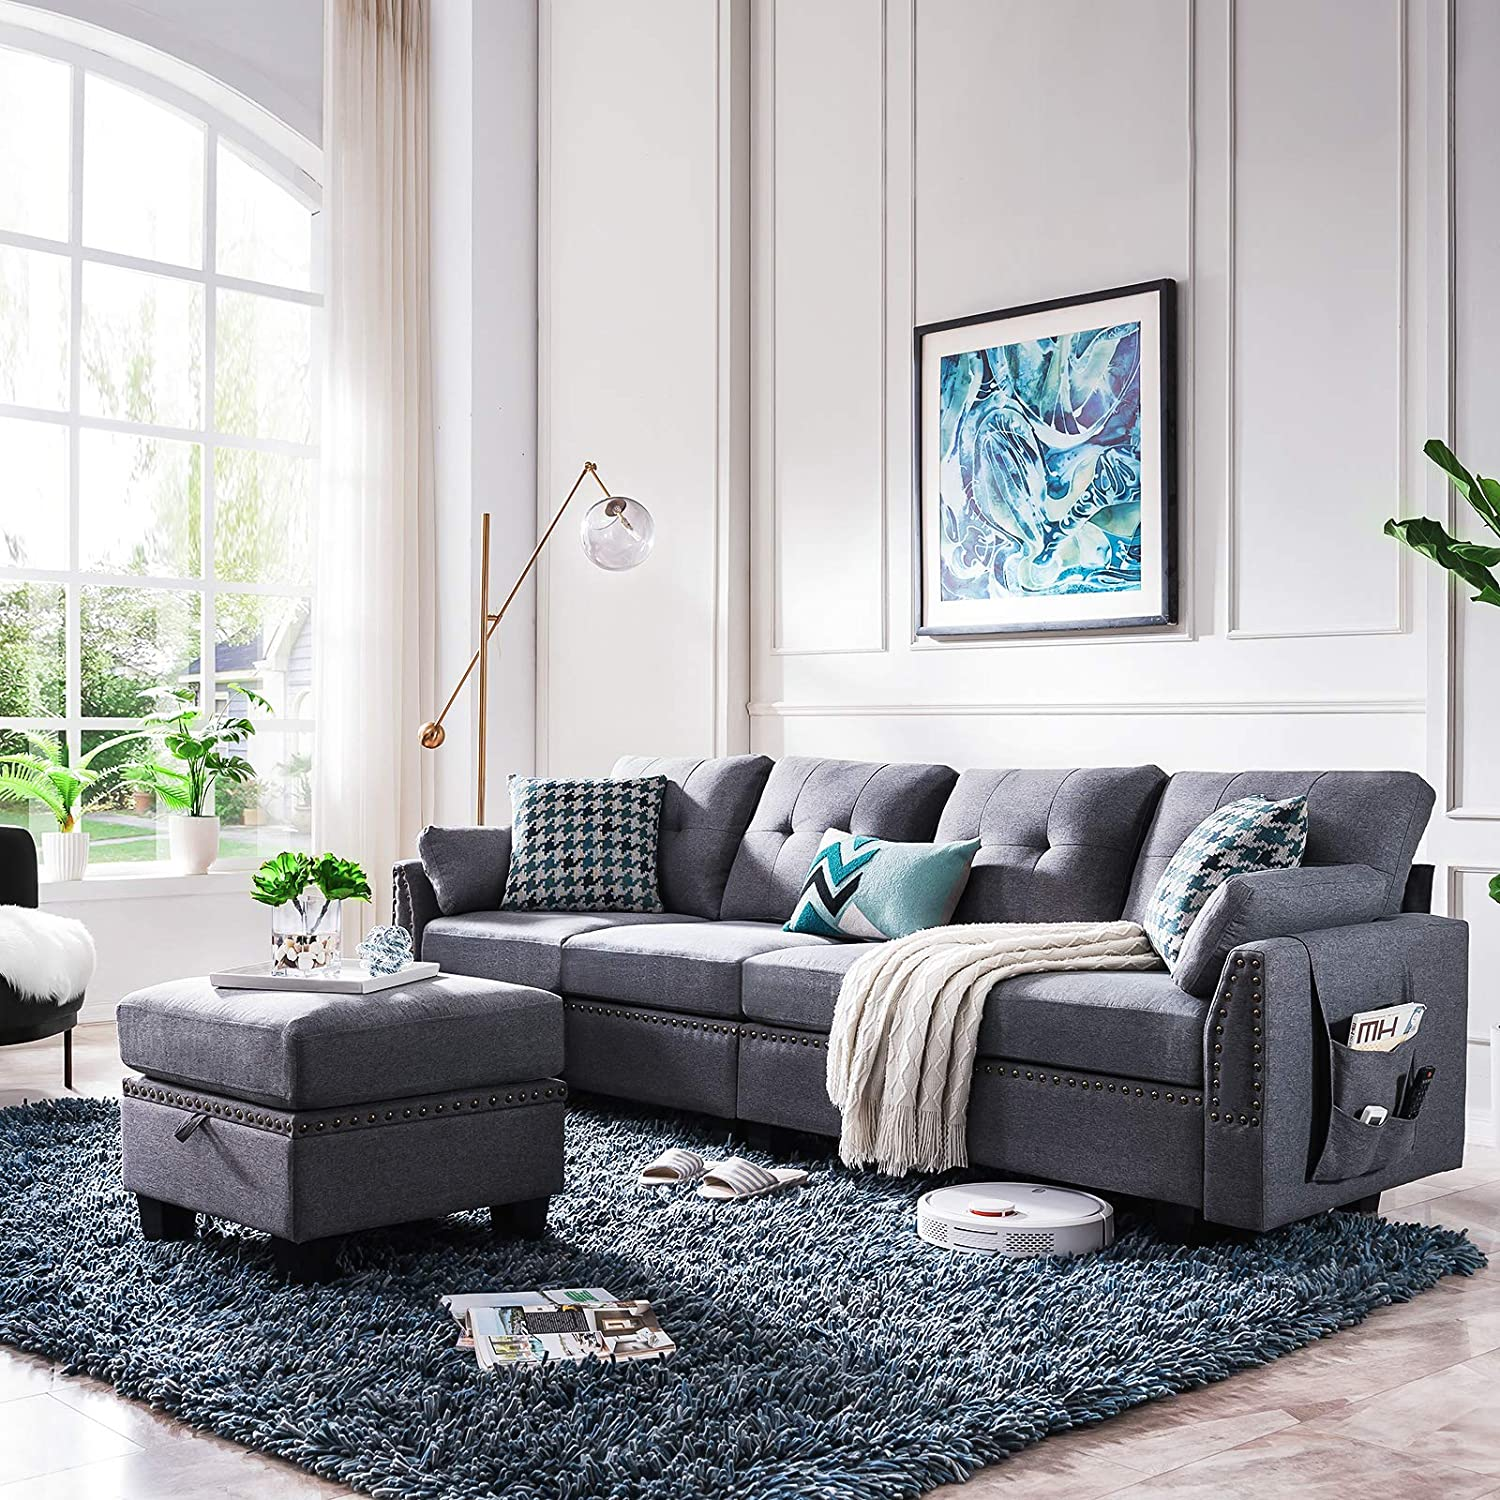 HONBAY Reversible Sectional Sofa Couch for Living Room